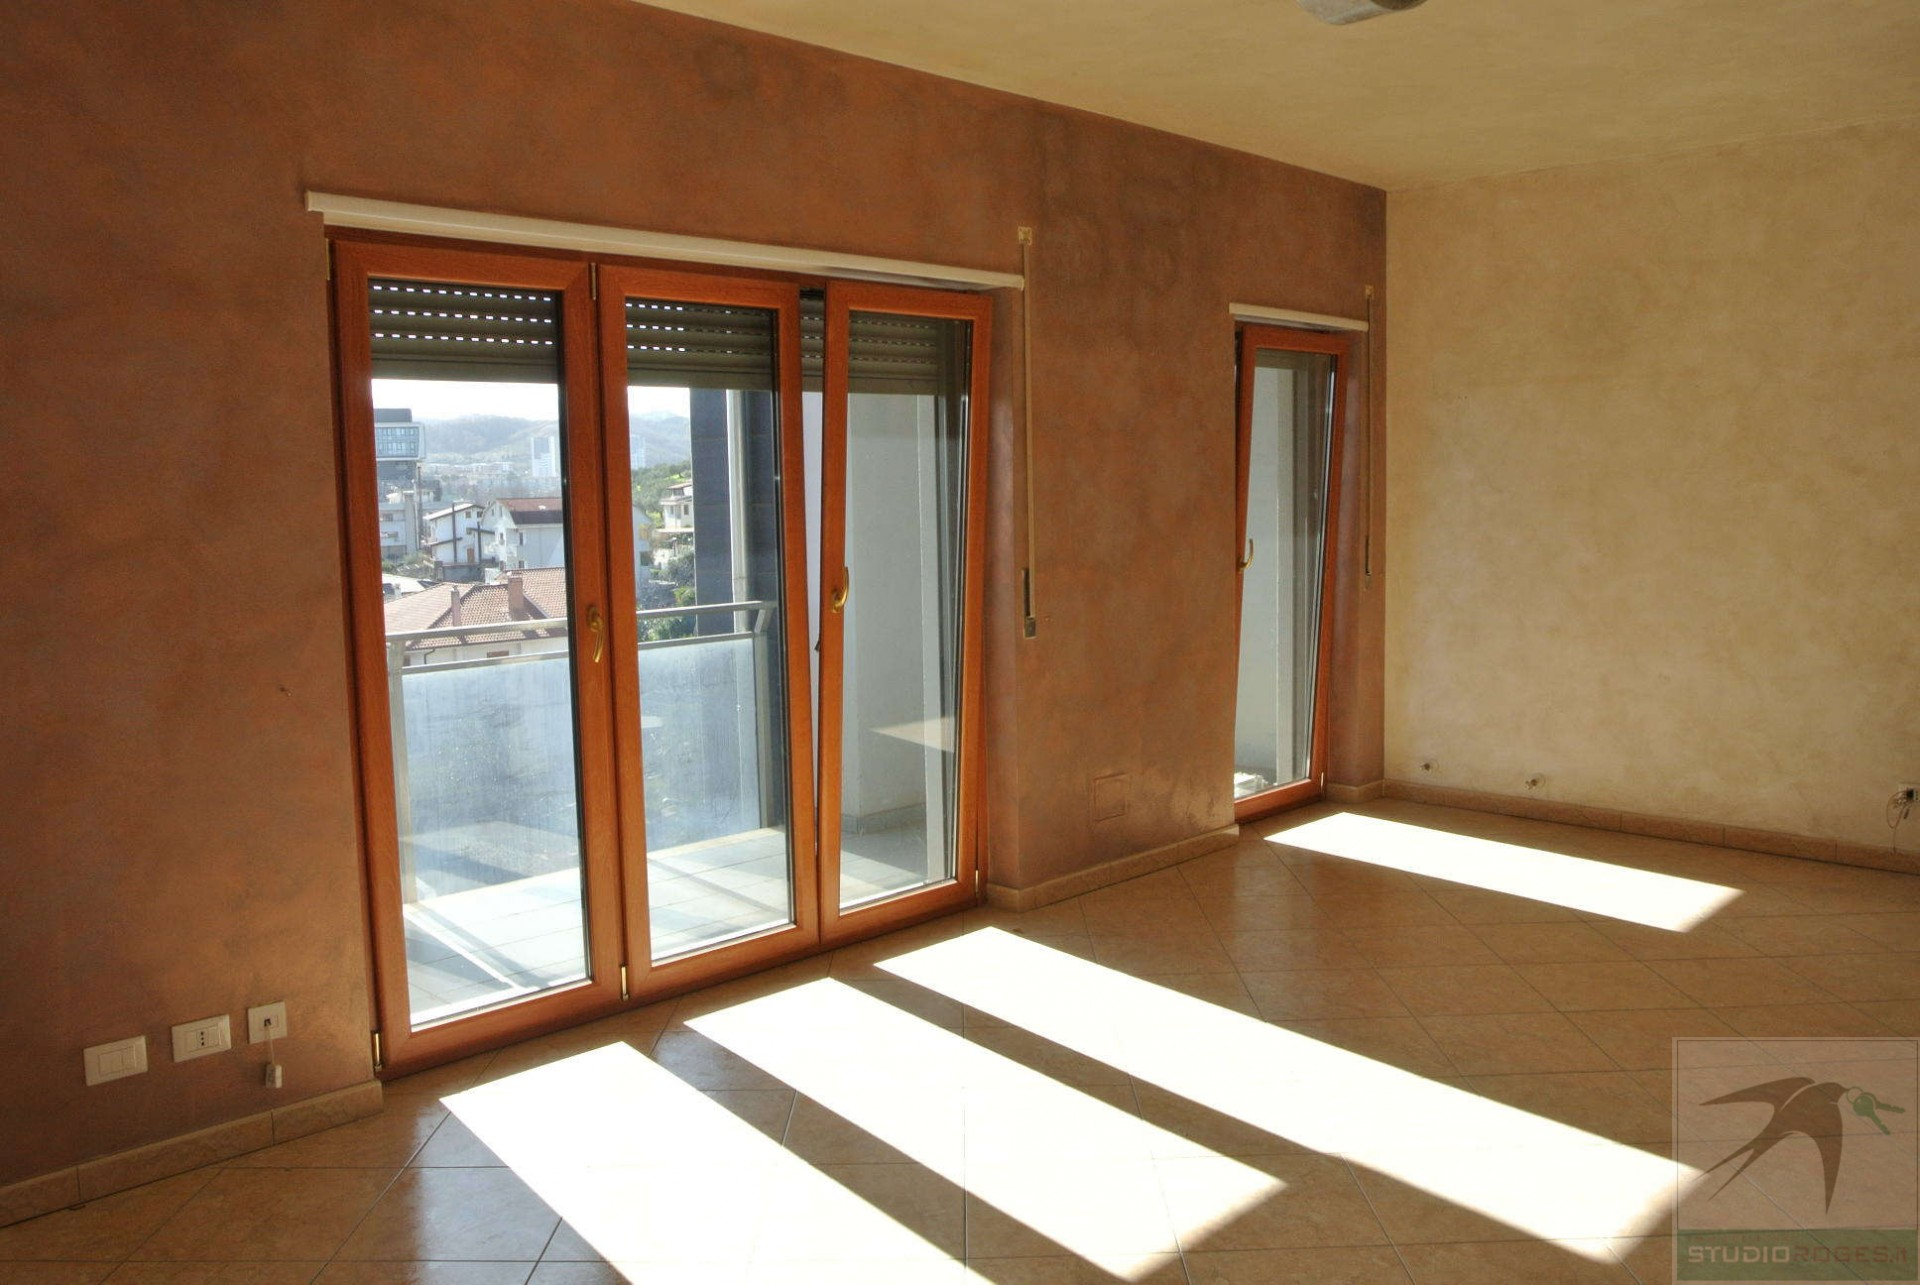 Appartamento in Affitto 130,00 mq - N. camere: 3 - - Rende - Roges-Commenda (CS)